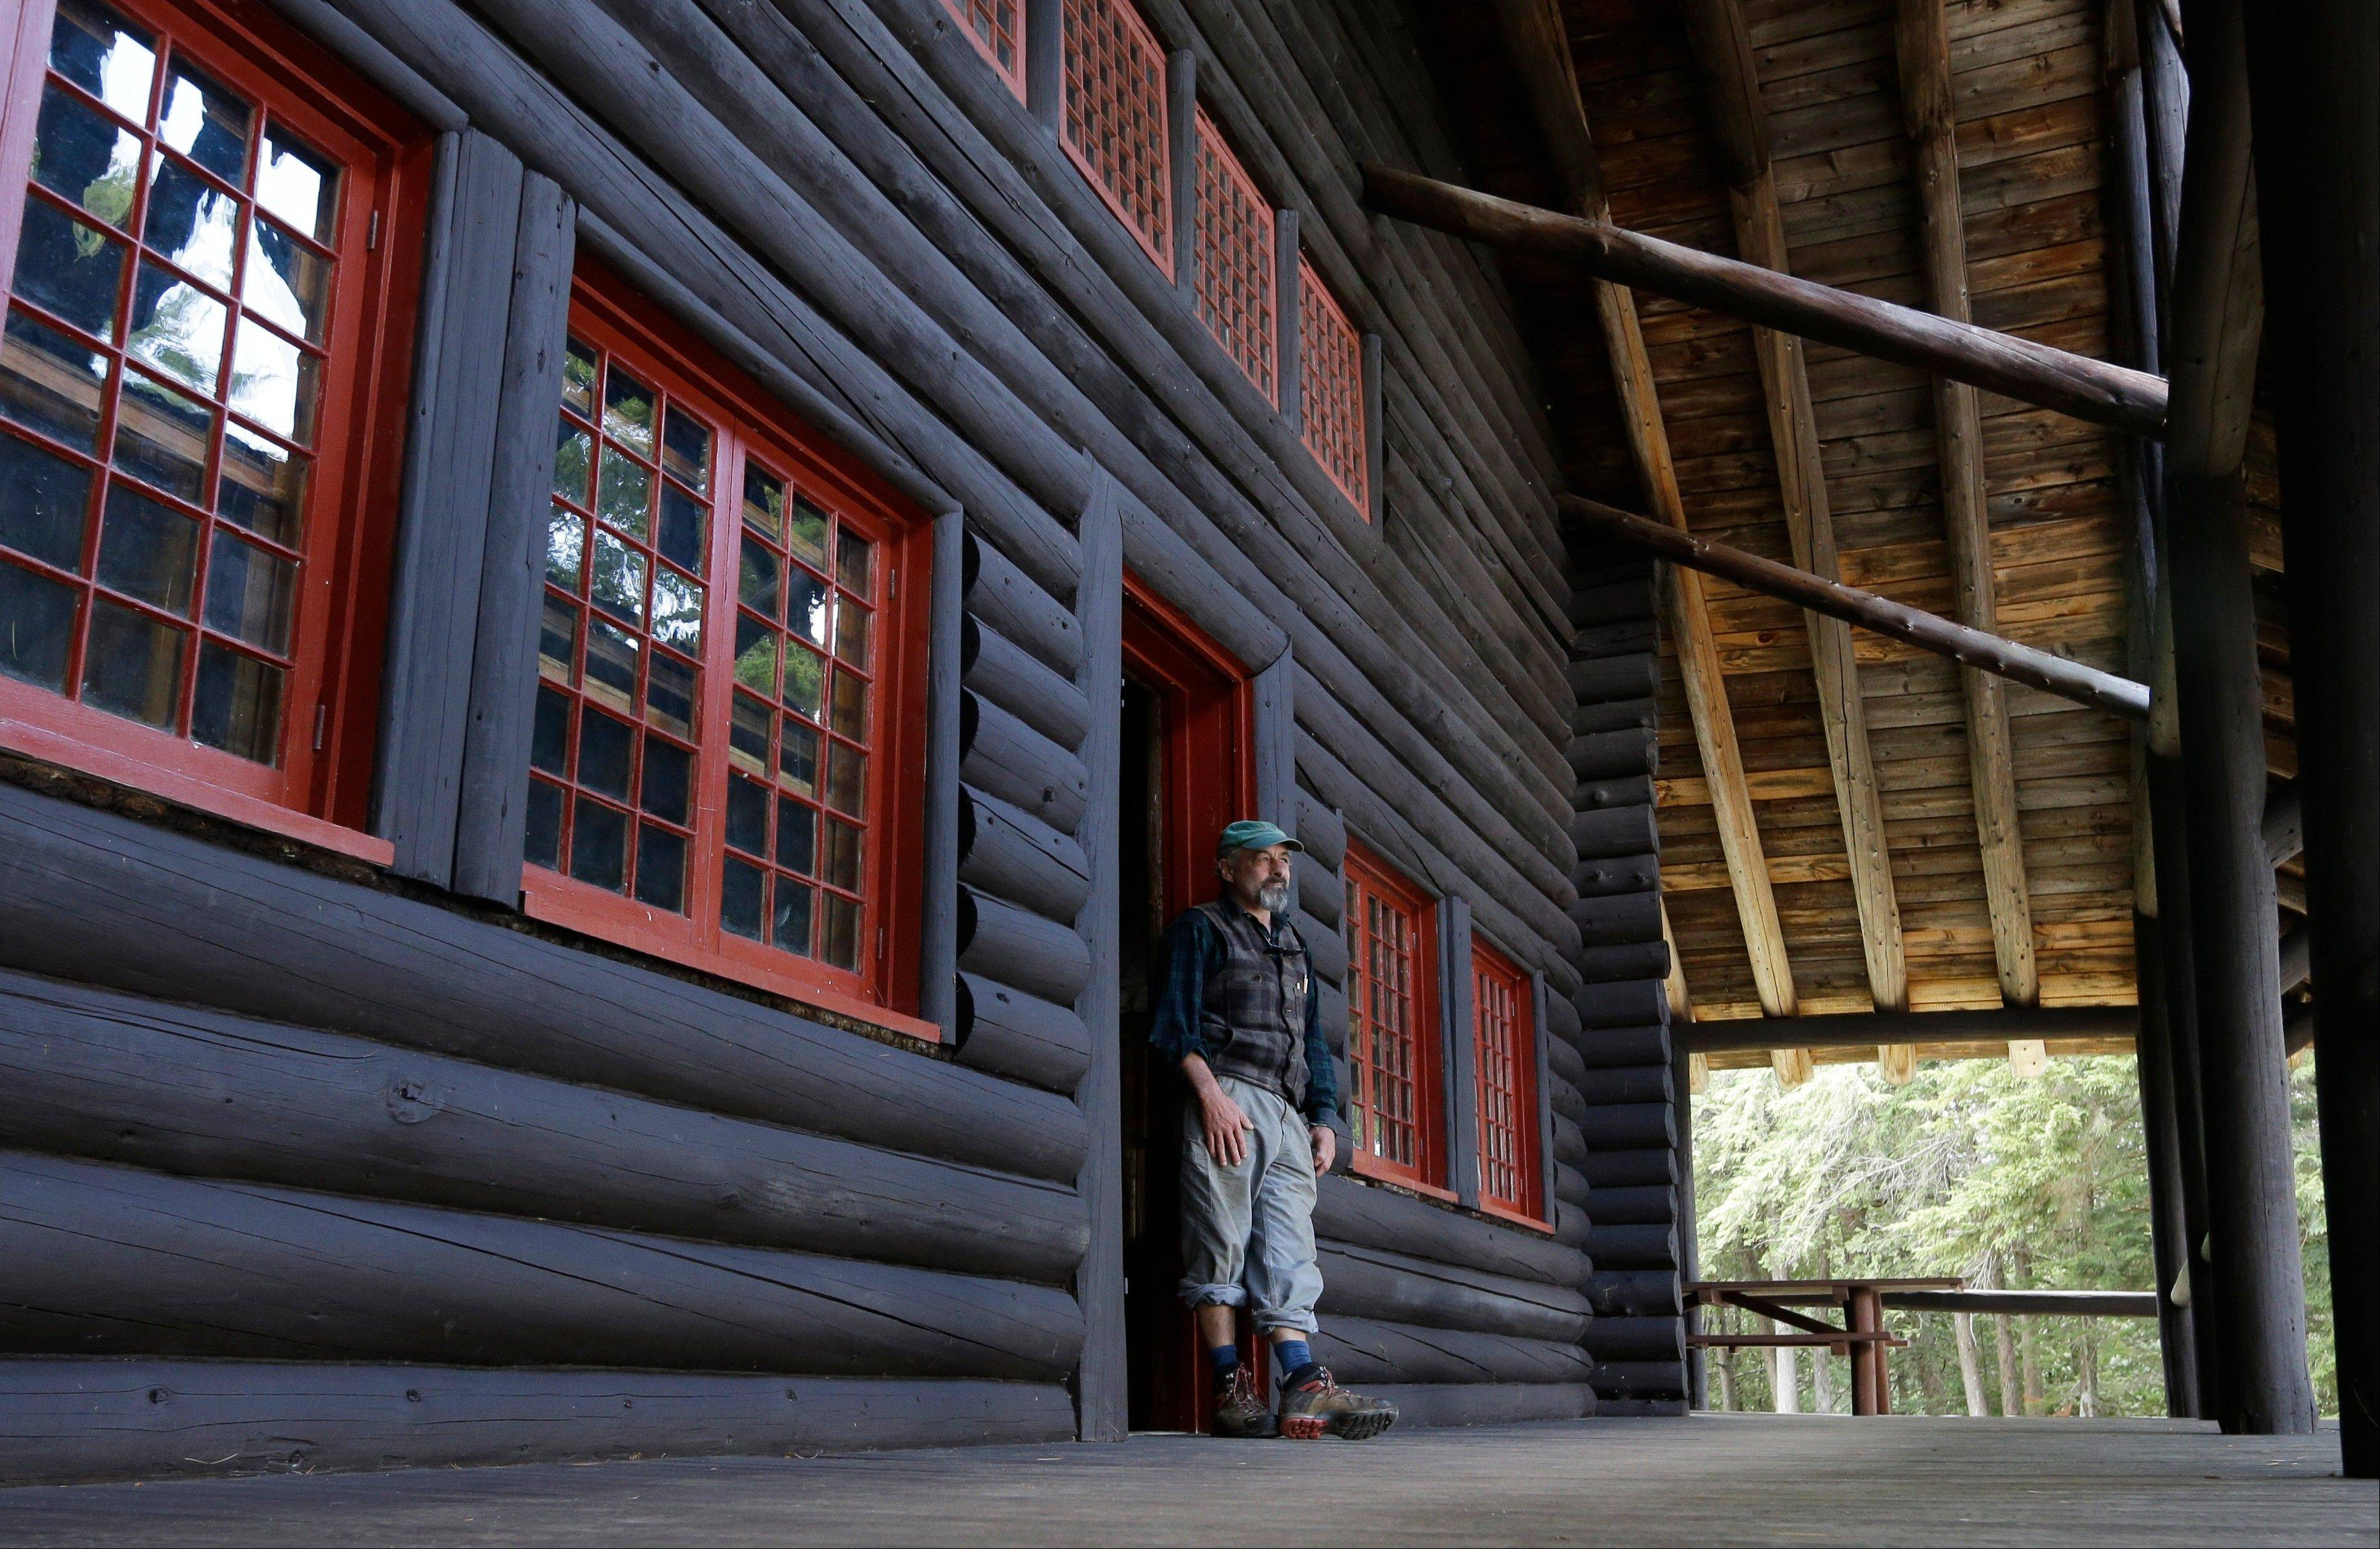 Master carpenter Michael Frenette in the main lodge at Camp Santanoni, an Adirondack great camp that is being restored, in Newcomb, N.Y. Santanoni was one of the earliest great camps built by wealthy families with names like Rockefeller and Vanderbilt beginning in the late 19th century.